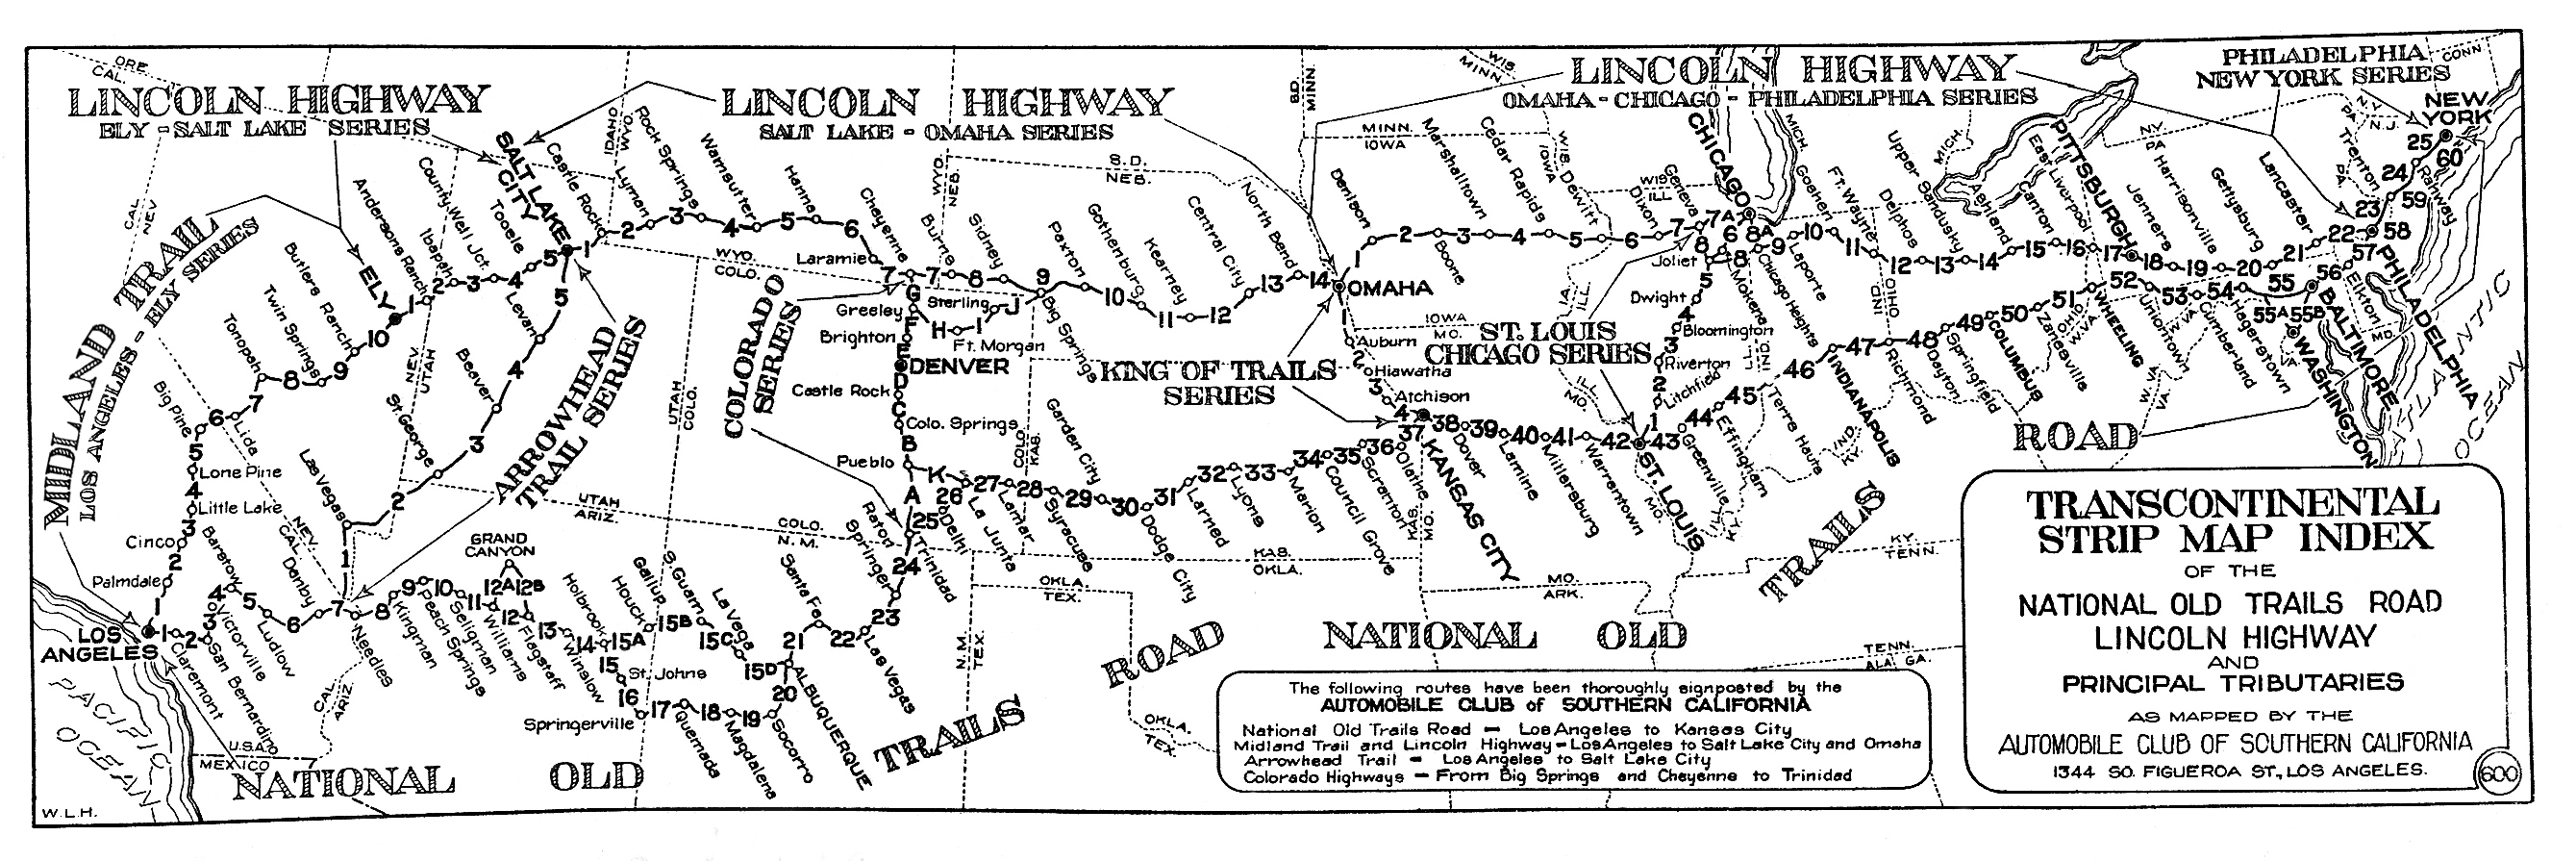 Show Posts Parsa - Us highway map of california